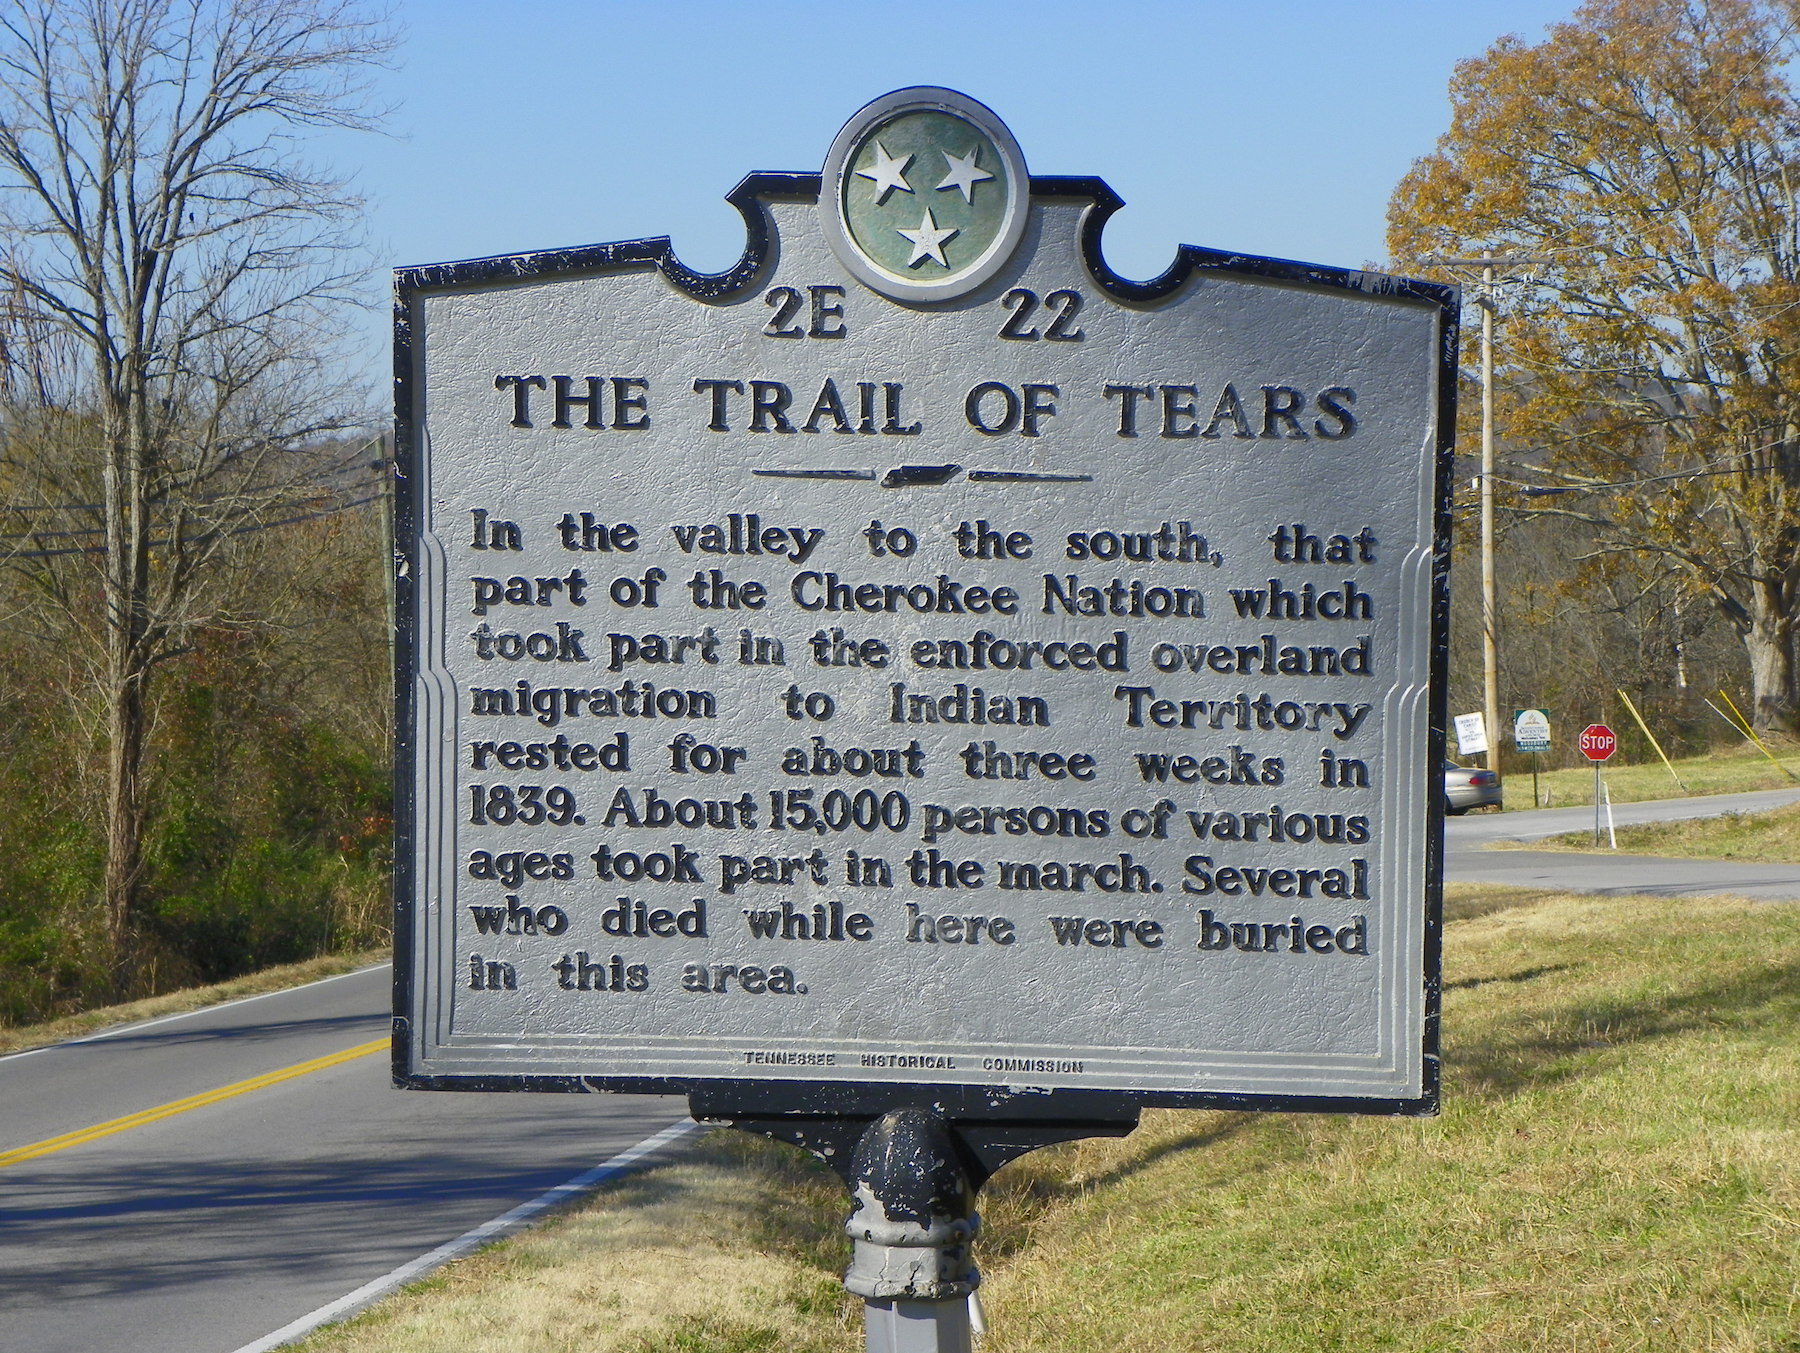 Albert Bender: Trail of Tears Walk commemorates forced removal of tribes